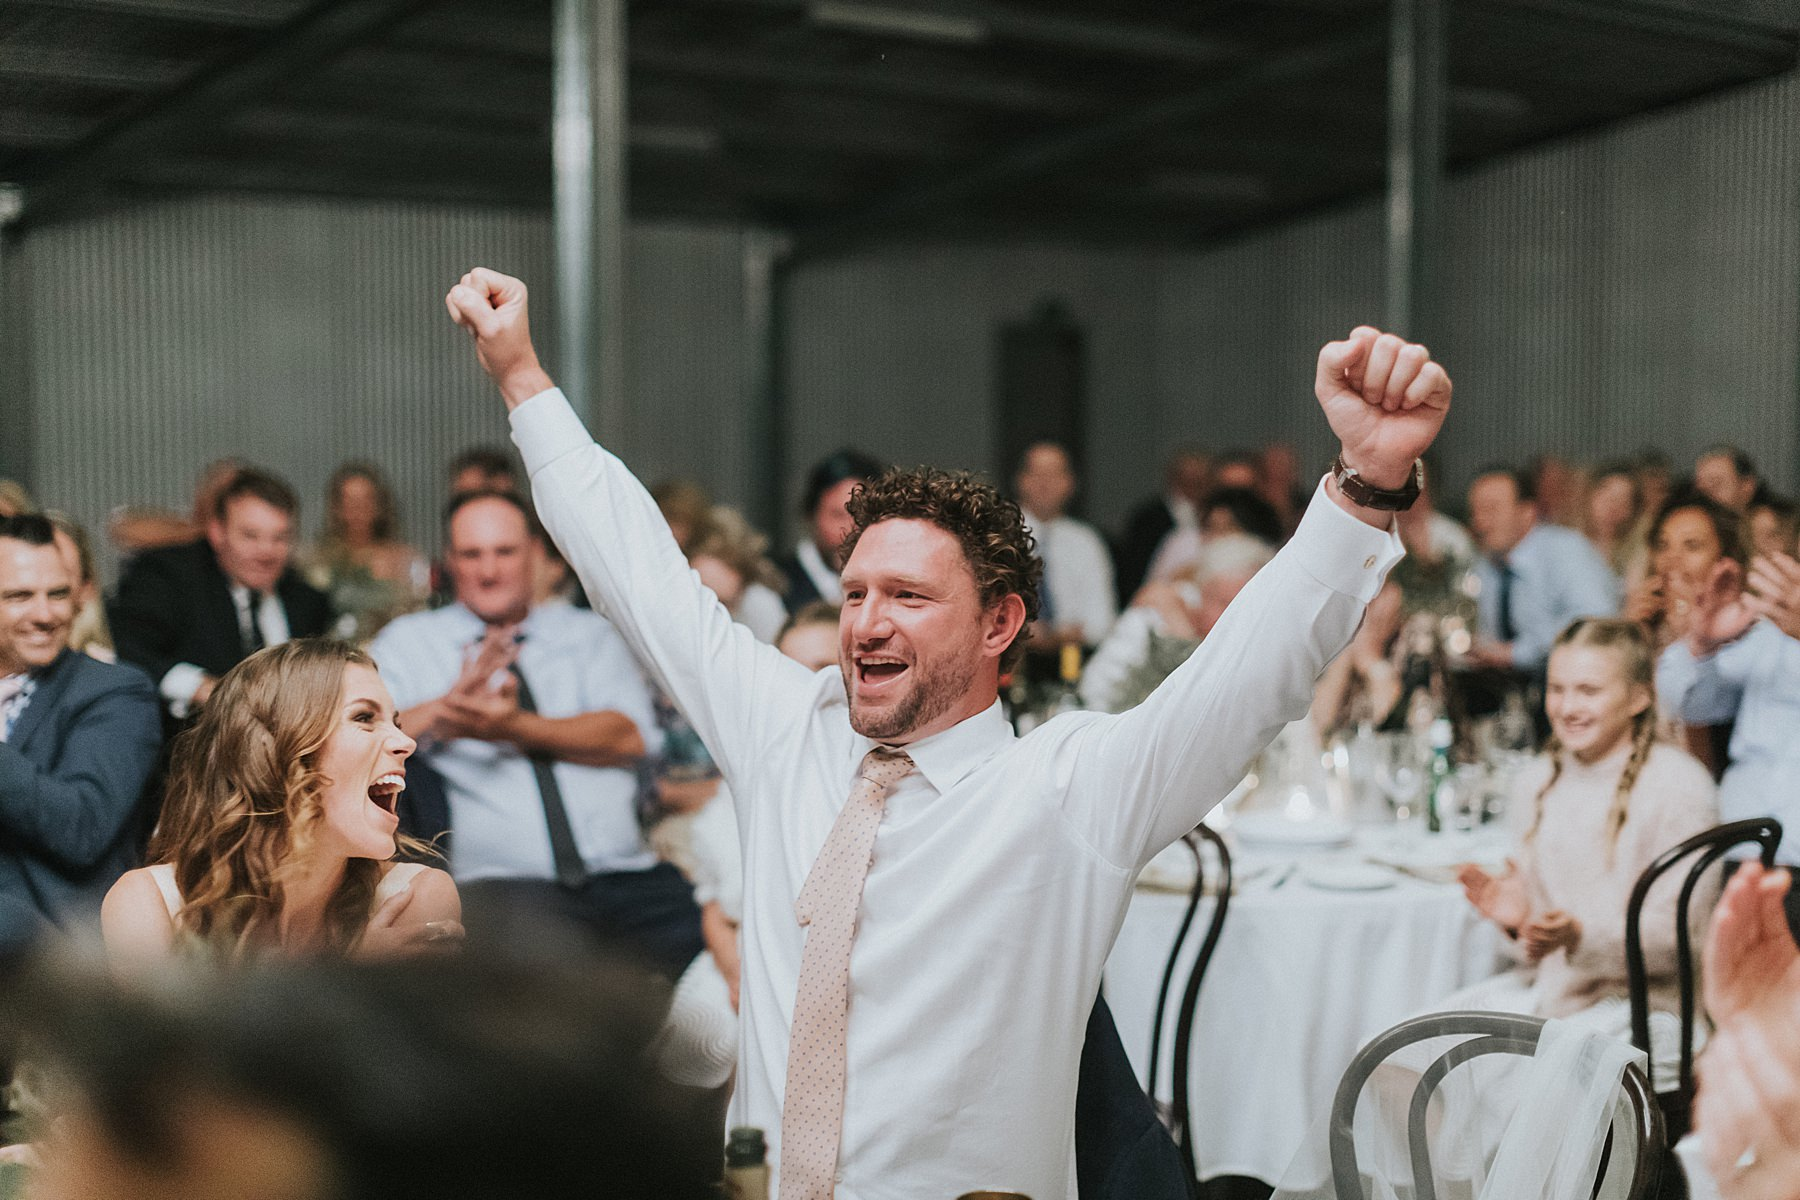 groom punching the air during wedding reception at coonamble